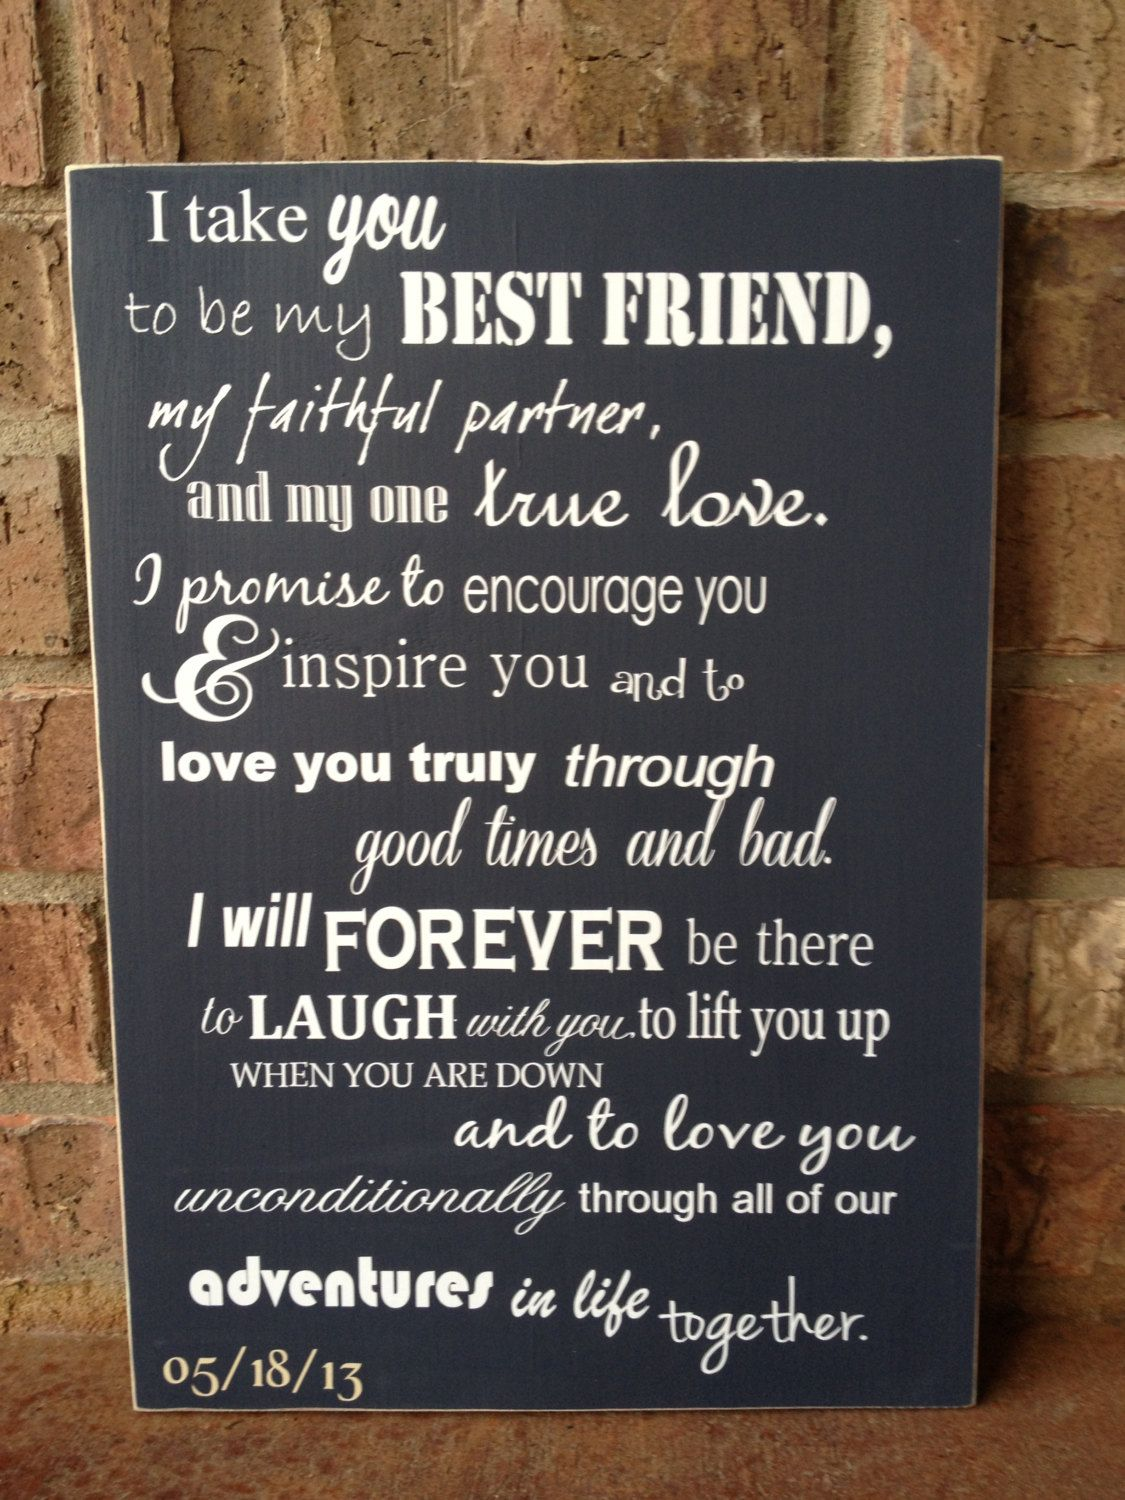 I Take You To Be My Best Friend Wedding Sign Perfect Shower Or Gift Via Etsy No Lie These Will Vows Simple Honest And The